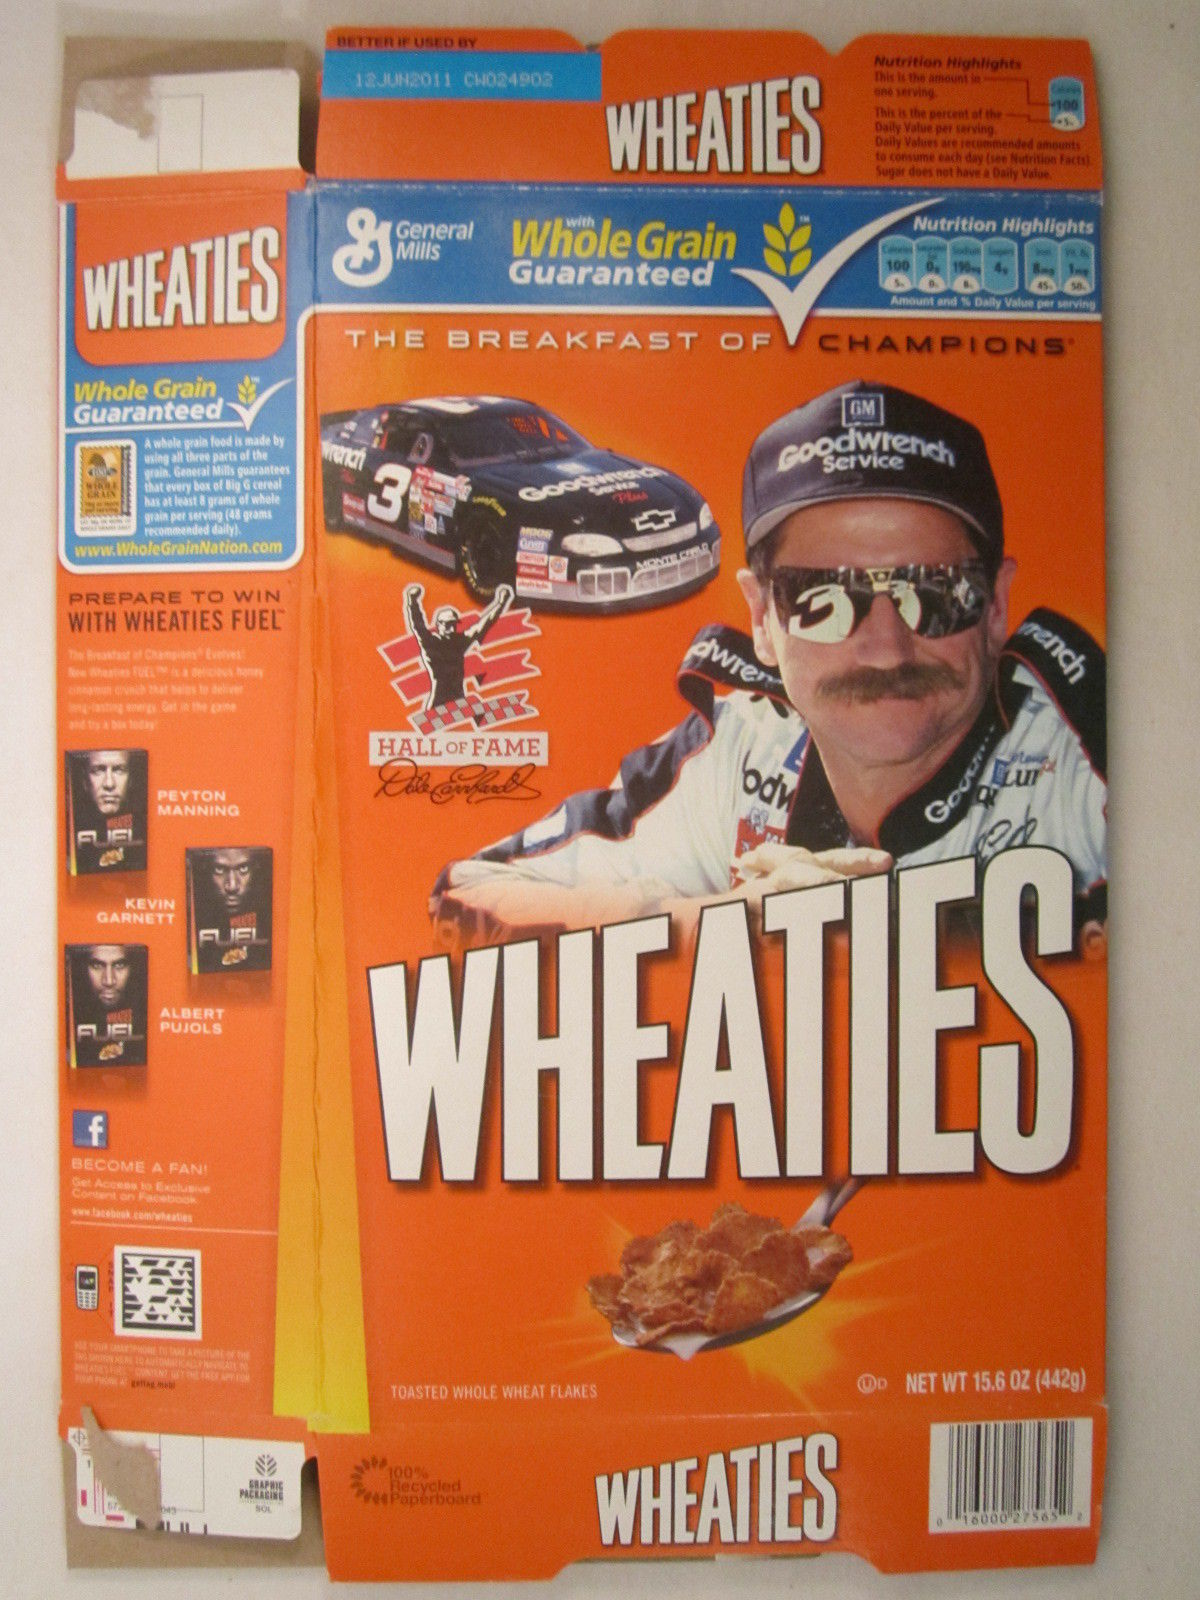 Empty WHEATIES Box 2010 15.6oz DALE EARNHARDT Sr Hall of Fame [Z202d2] - $6.38